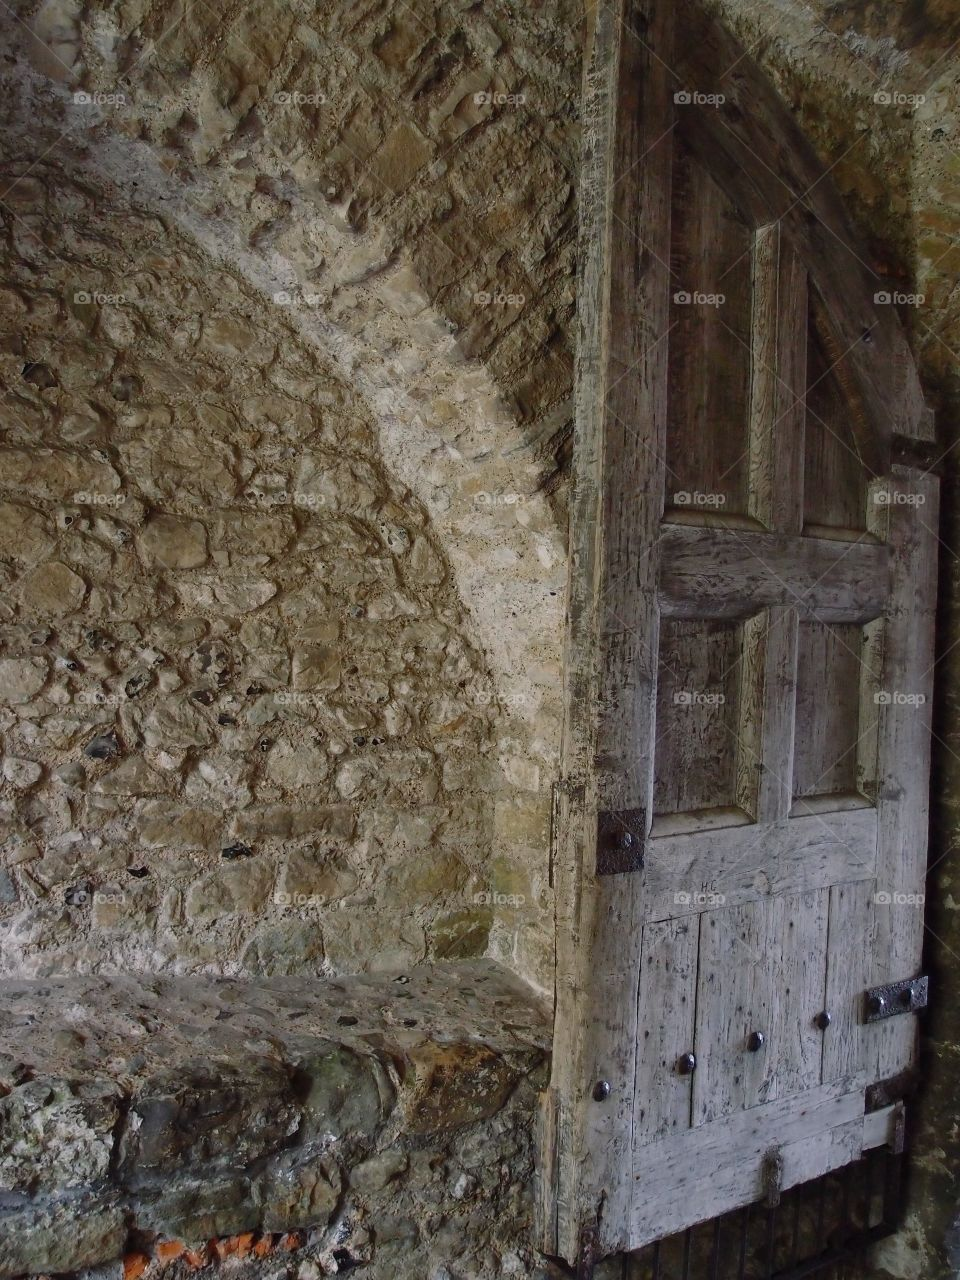 A worn wooden door in a corridor attached to an old stone building in Dover England.